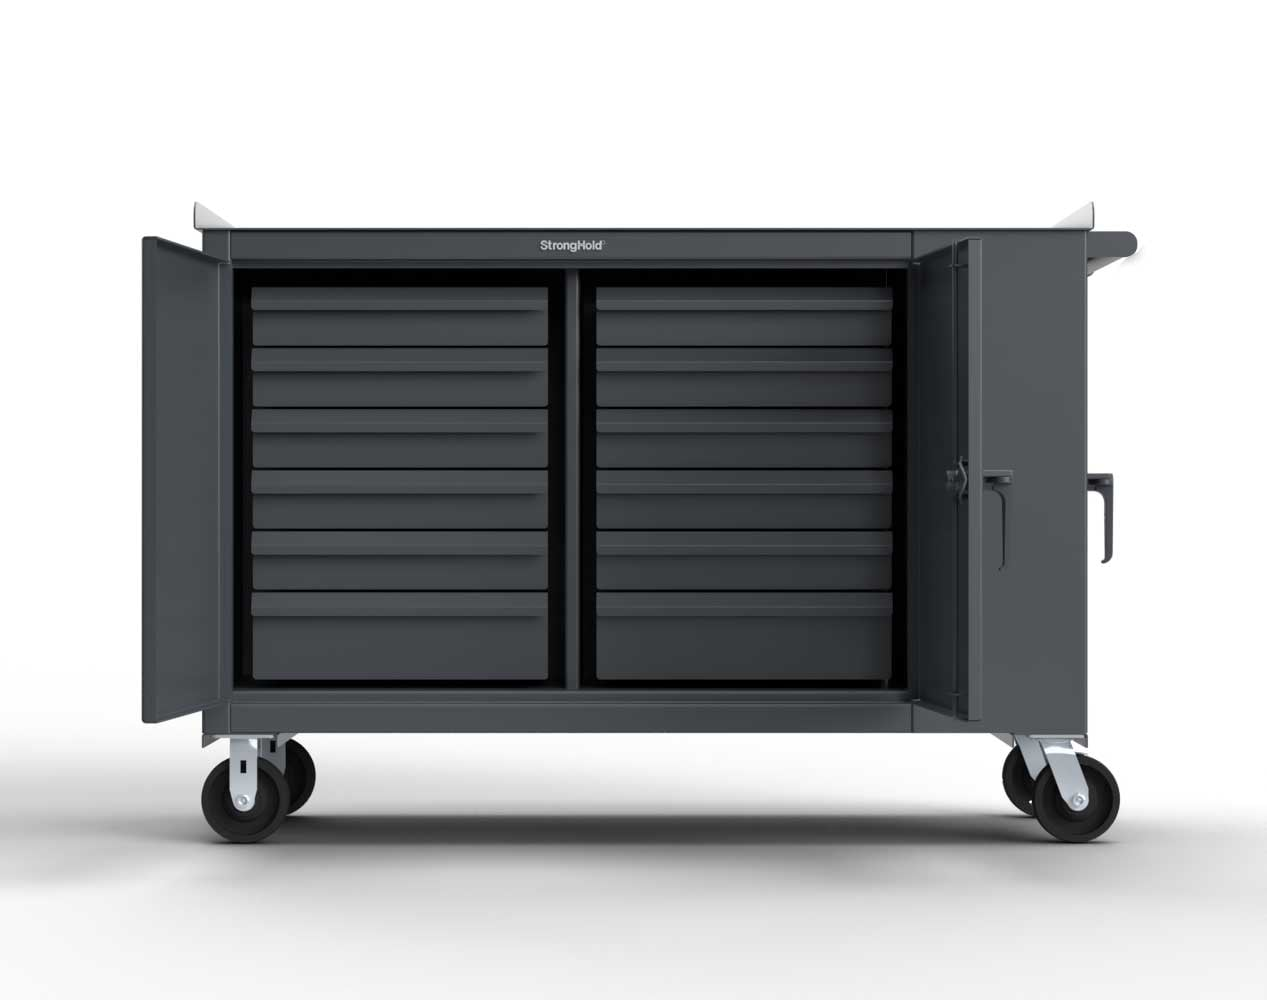 Extra Heavy Duty 12 GA Mobile Tool Cart with Multiple Compartments, 7 GA Steel Top, 12 Half-Width Drawers, 2 Shelves – 61 in. W x 24 in. D x 42 in. H